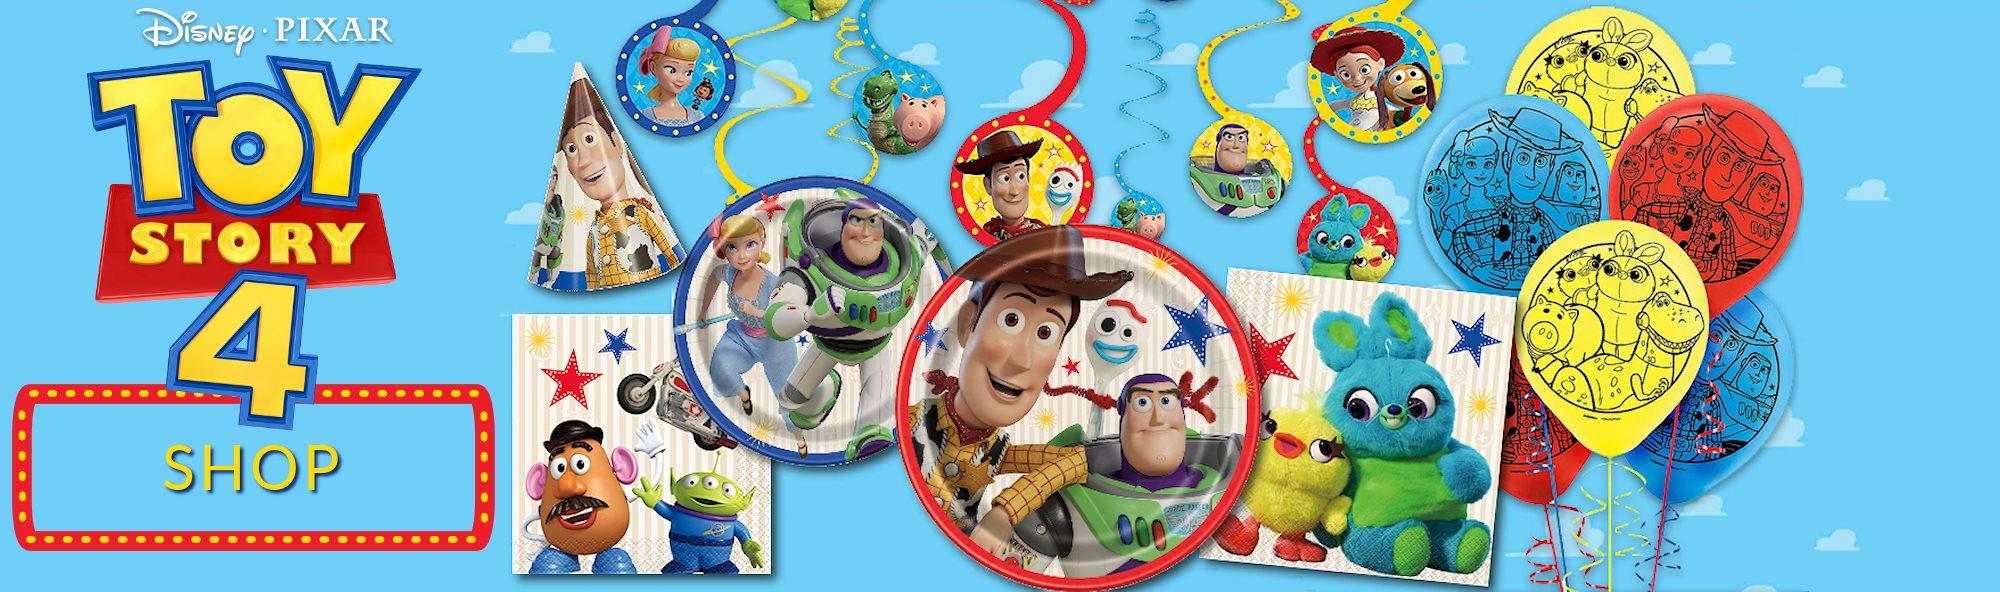 Shop - Toy Story 4